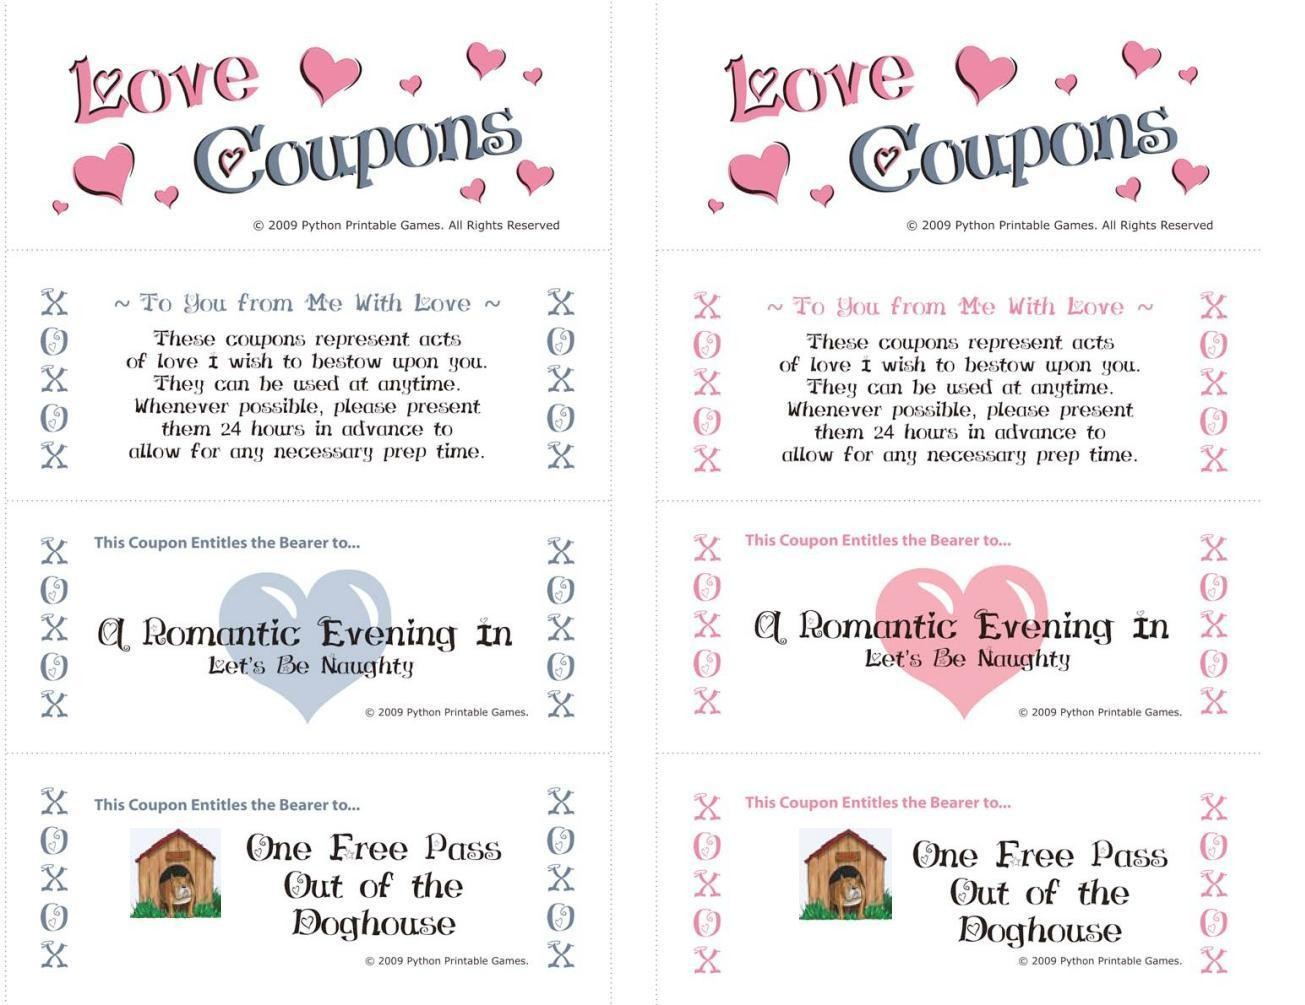 Games for Lovers: Romantic Coupons